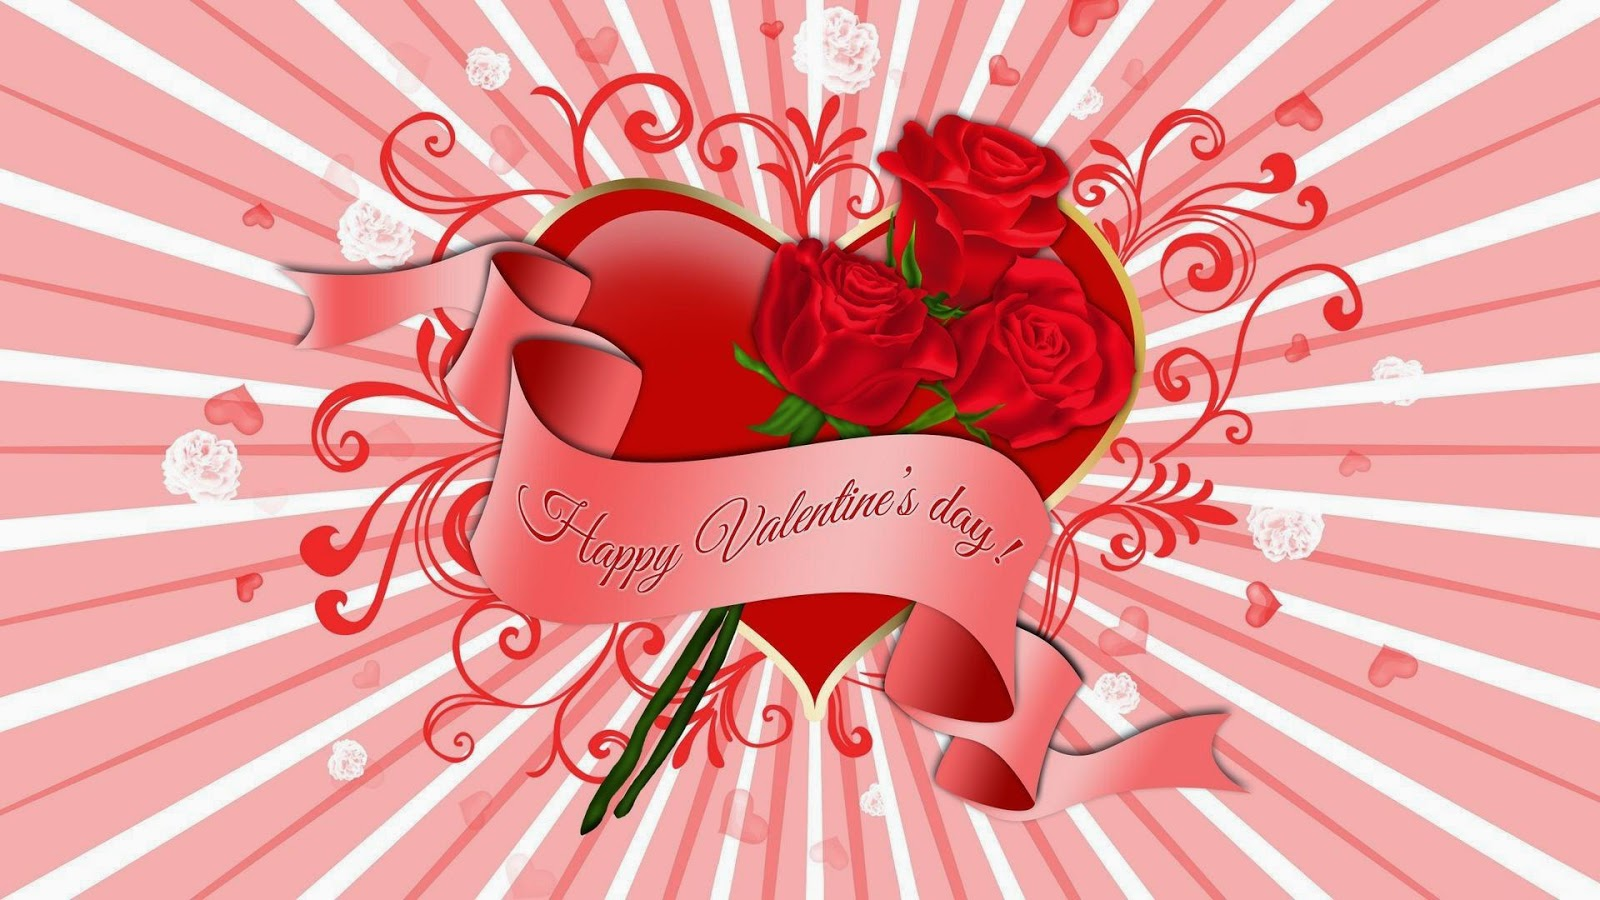 Happy Valentines Day cute background picture